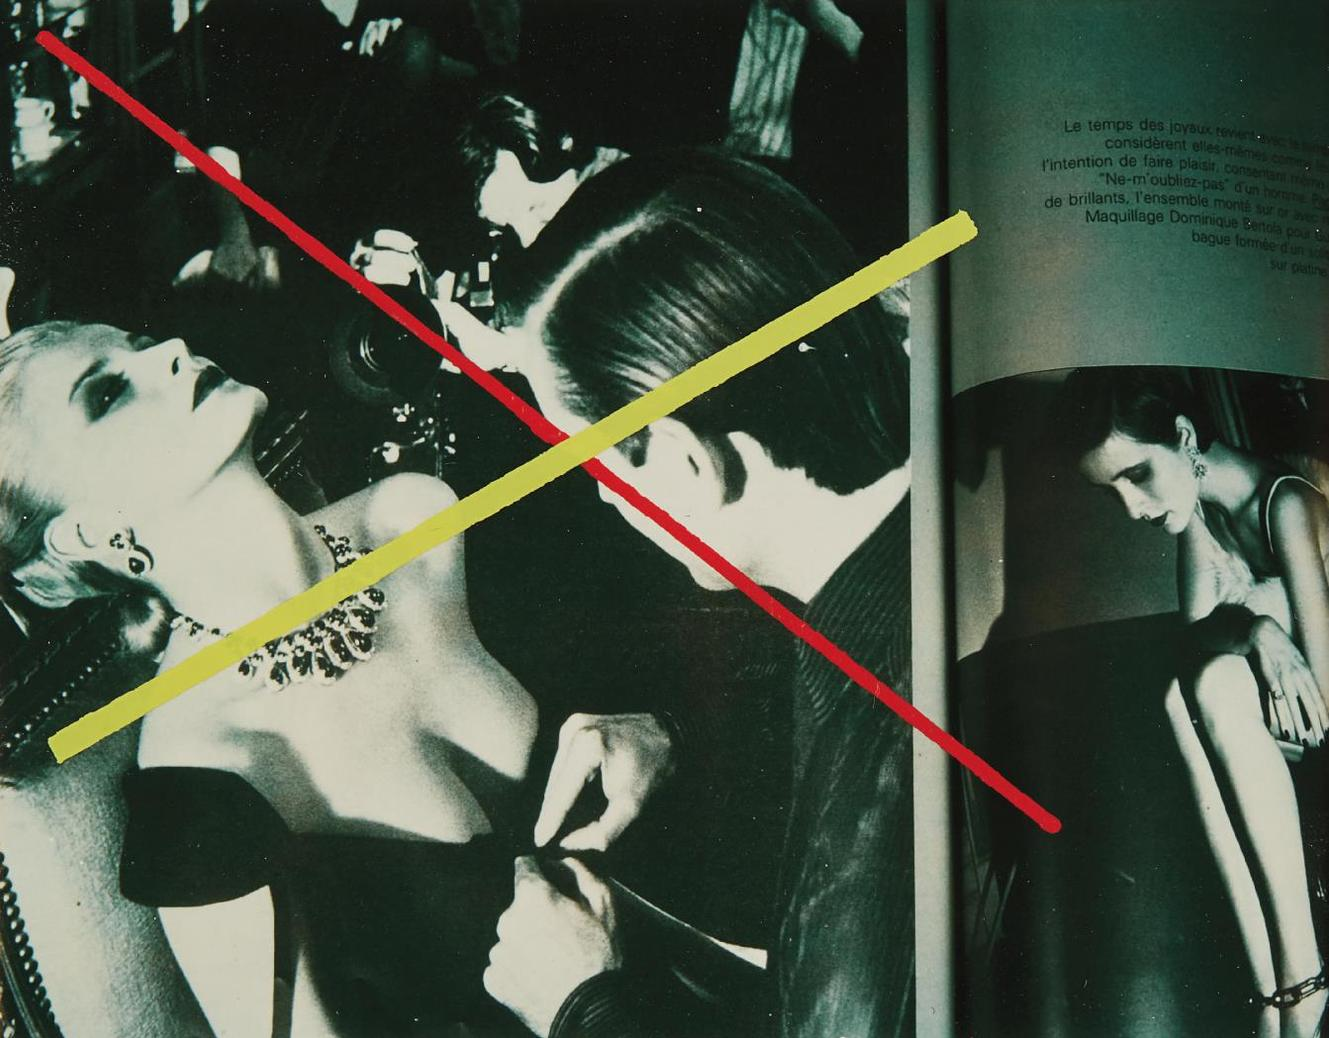 Richard Pettibone-Helmut Newton, Le Temps Des Joyaux, French Vogue, 1979-1980